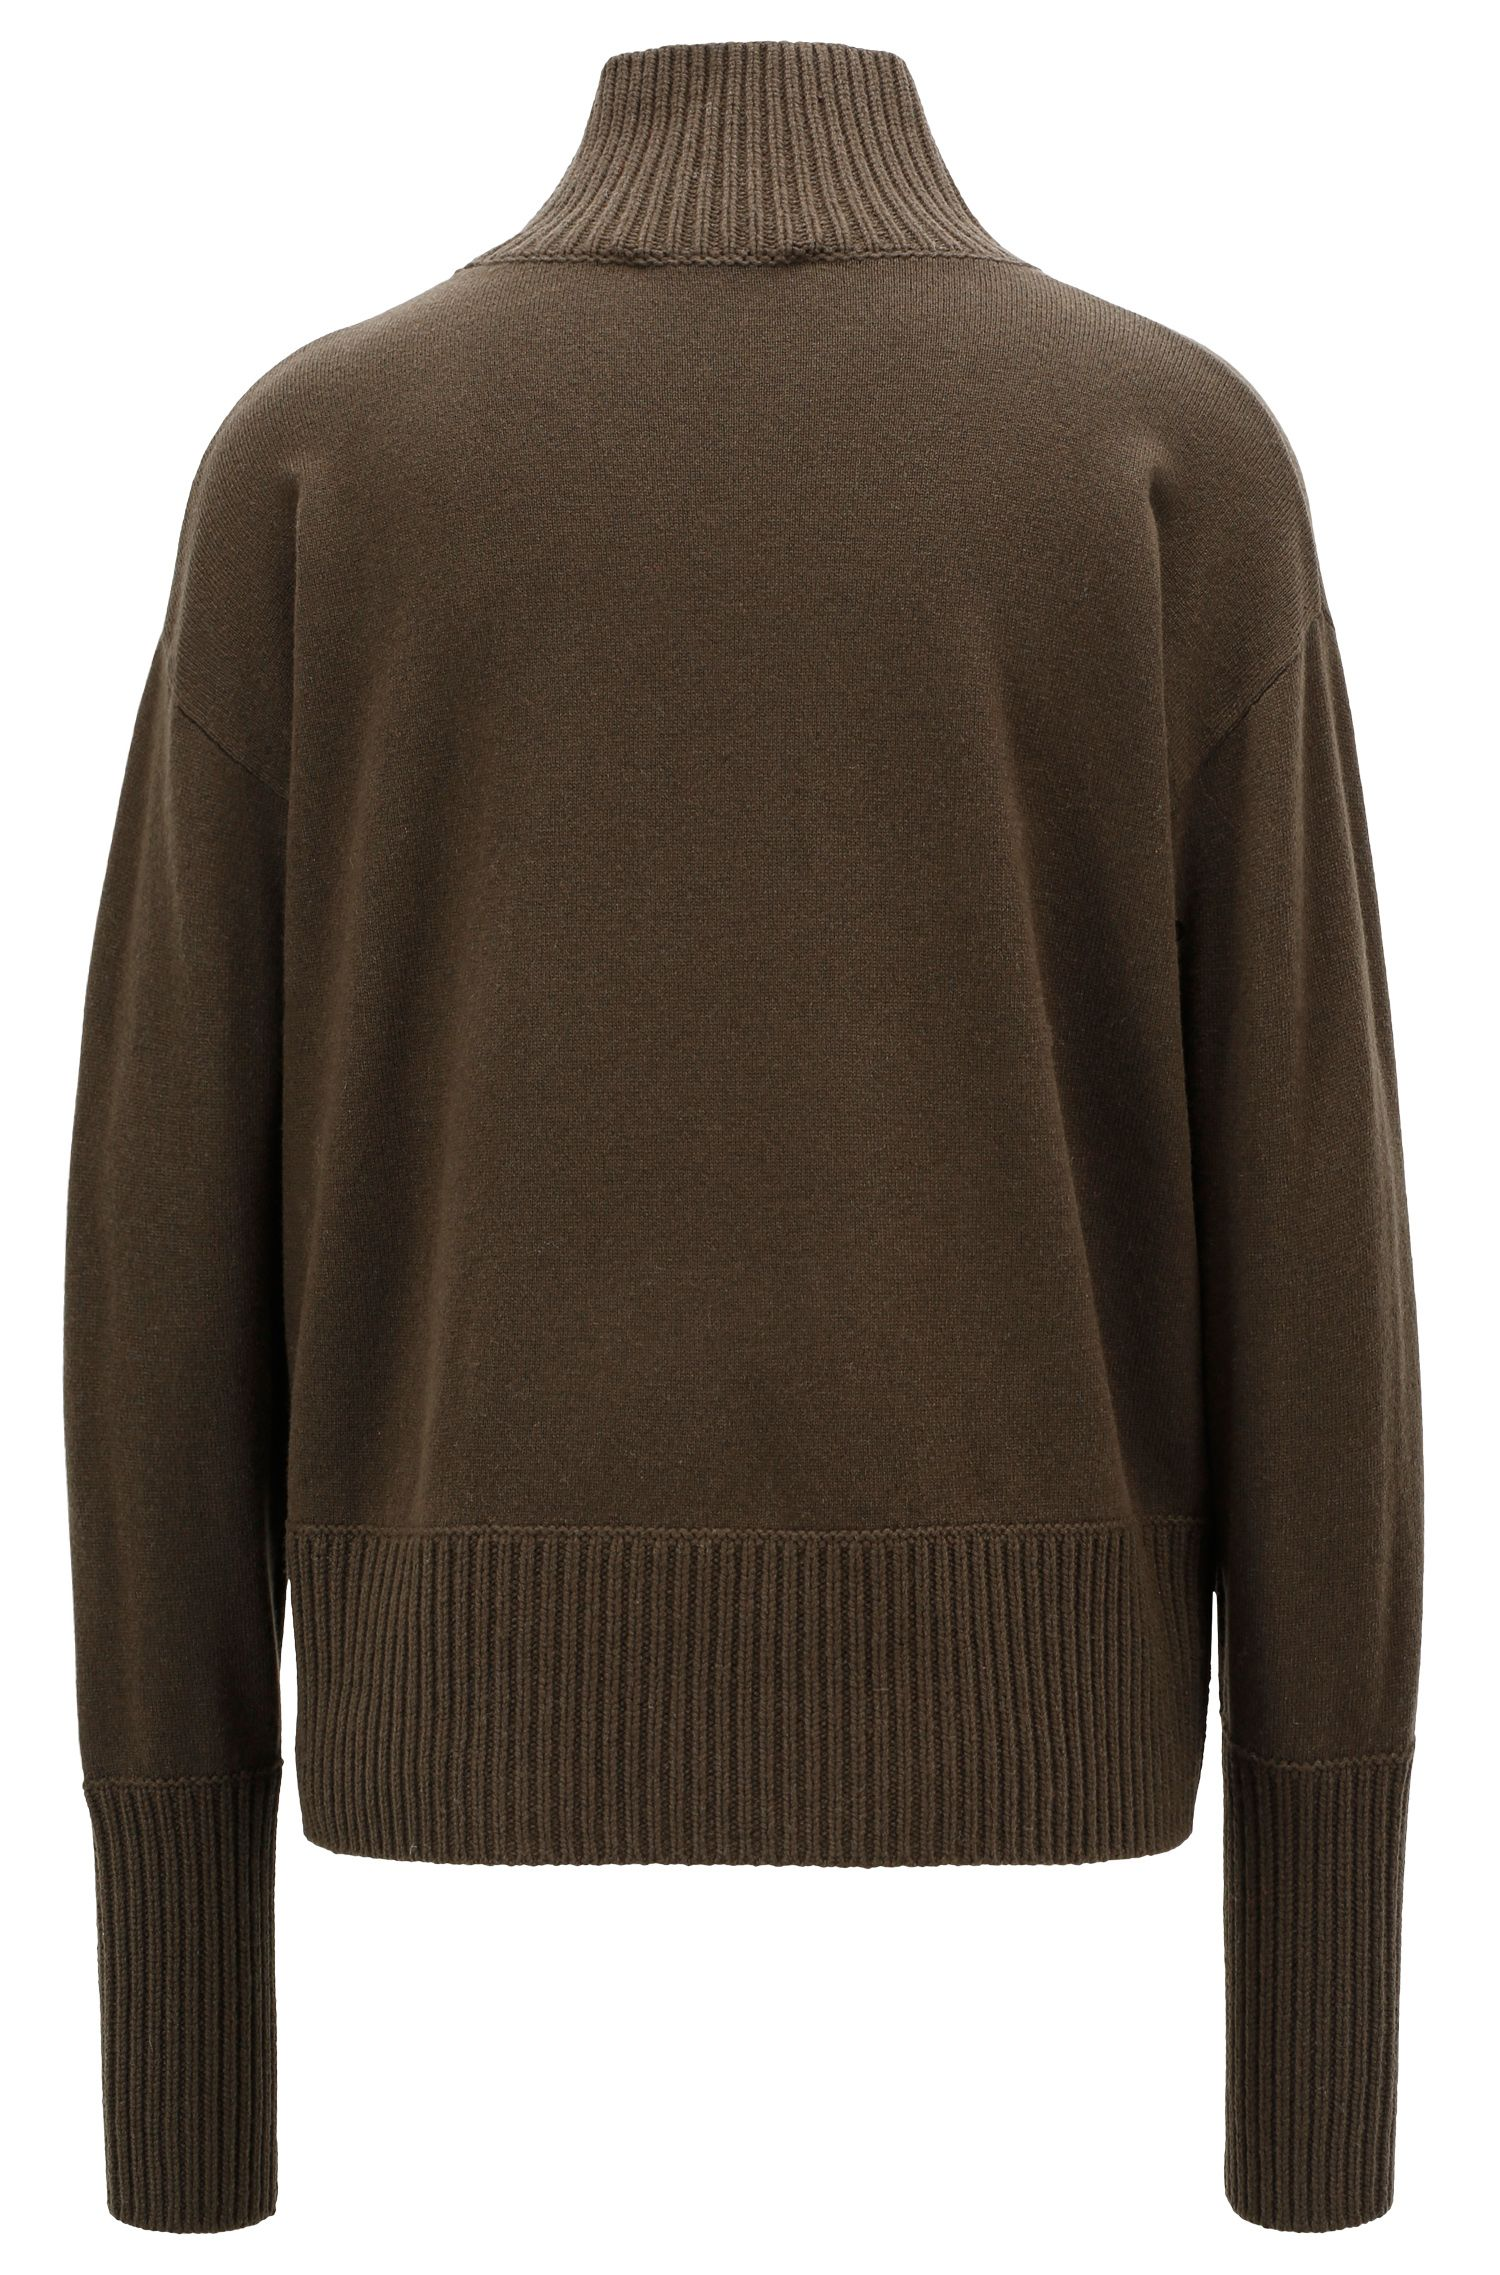 Wool-blend sweater with patch pockets and funnel neck, Open Green